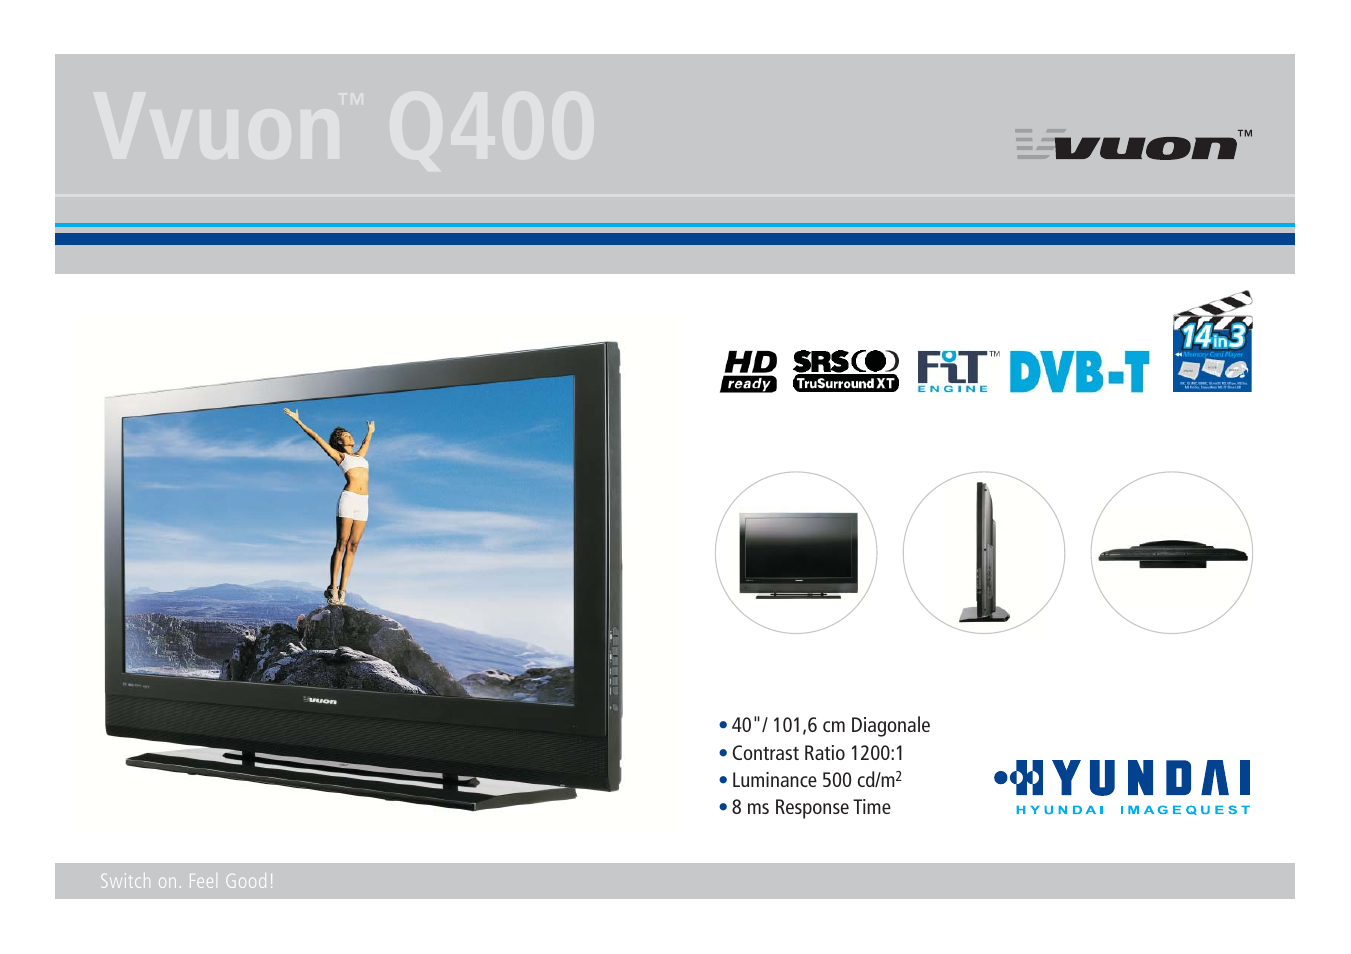 Hyundai VVUON Q400 User Manual | 2 pages